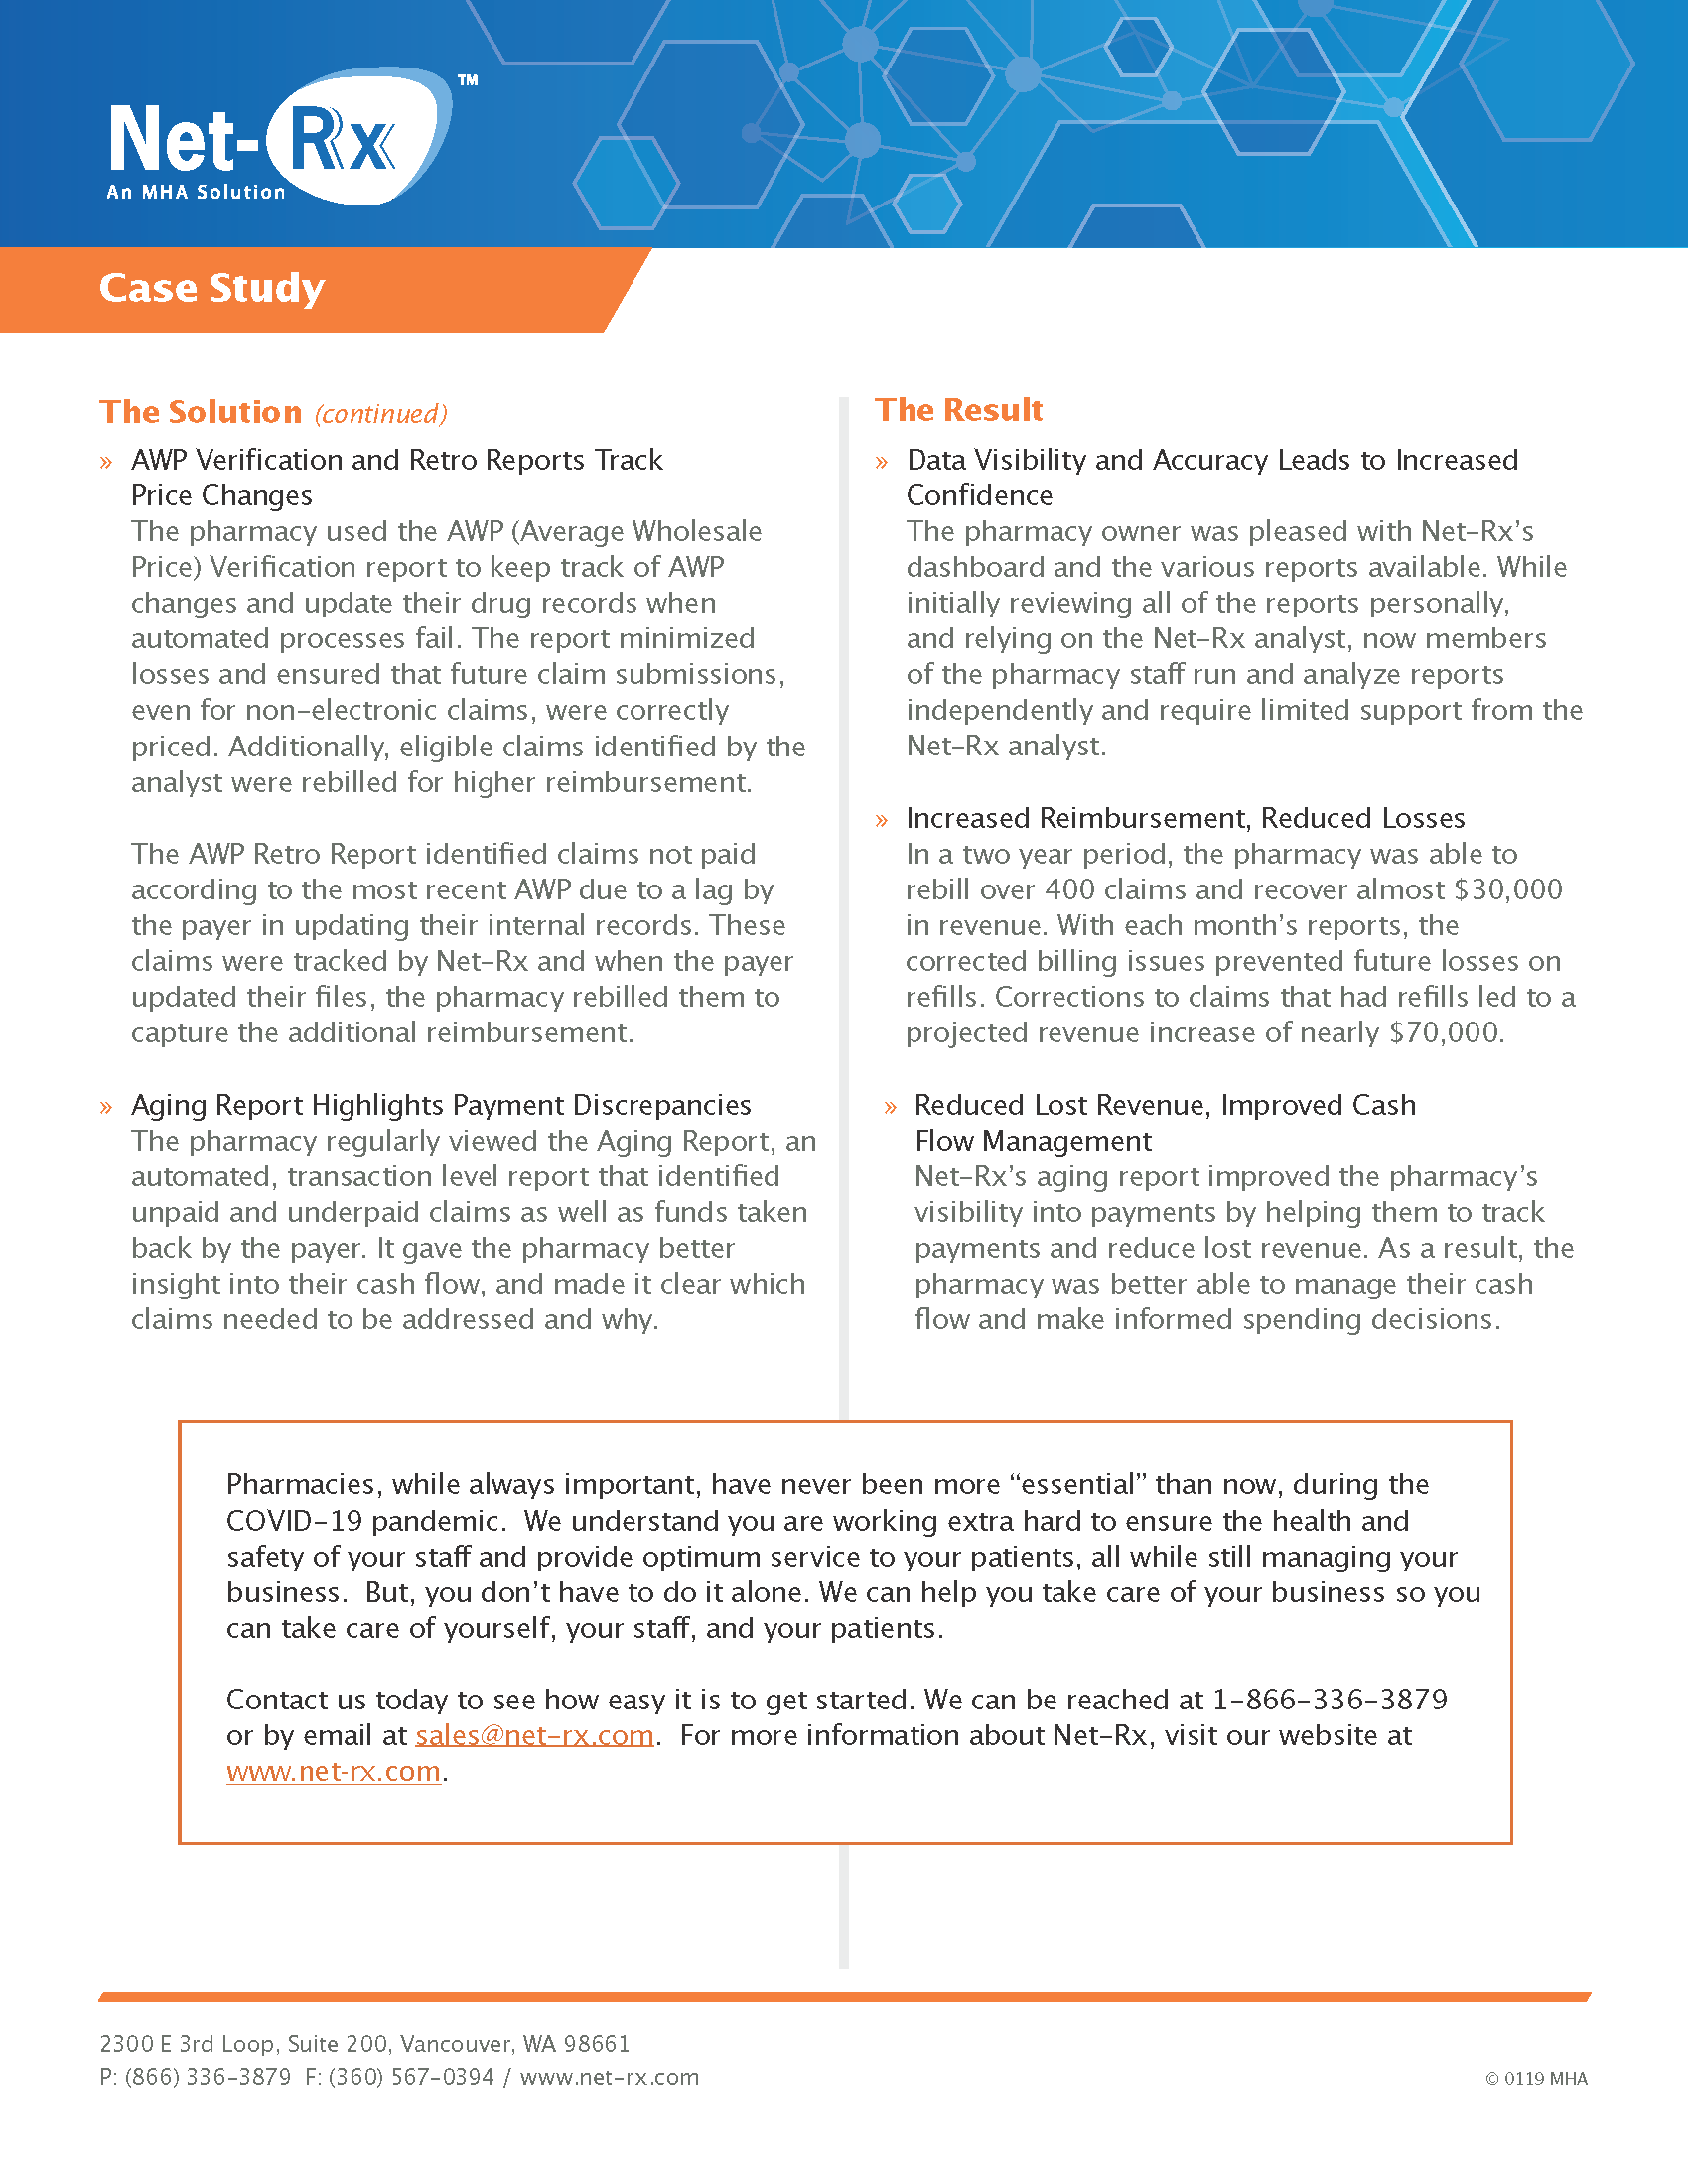 NetRx_CaseStudy_07-17-20 - COVID version_Page_2.png